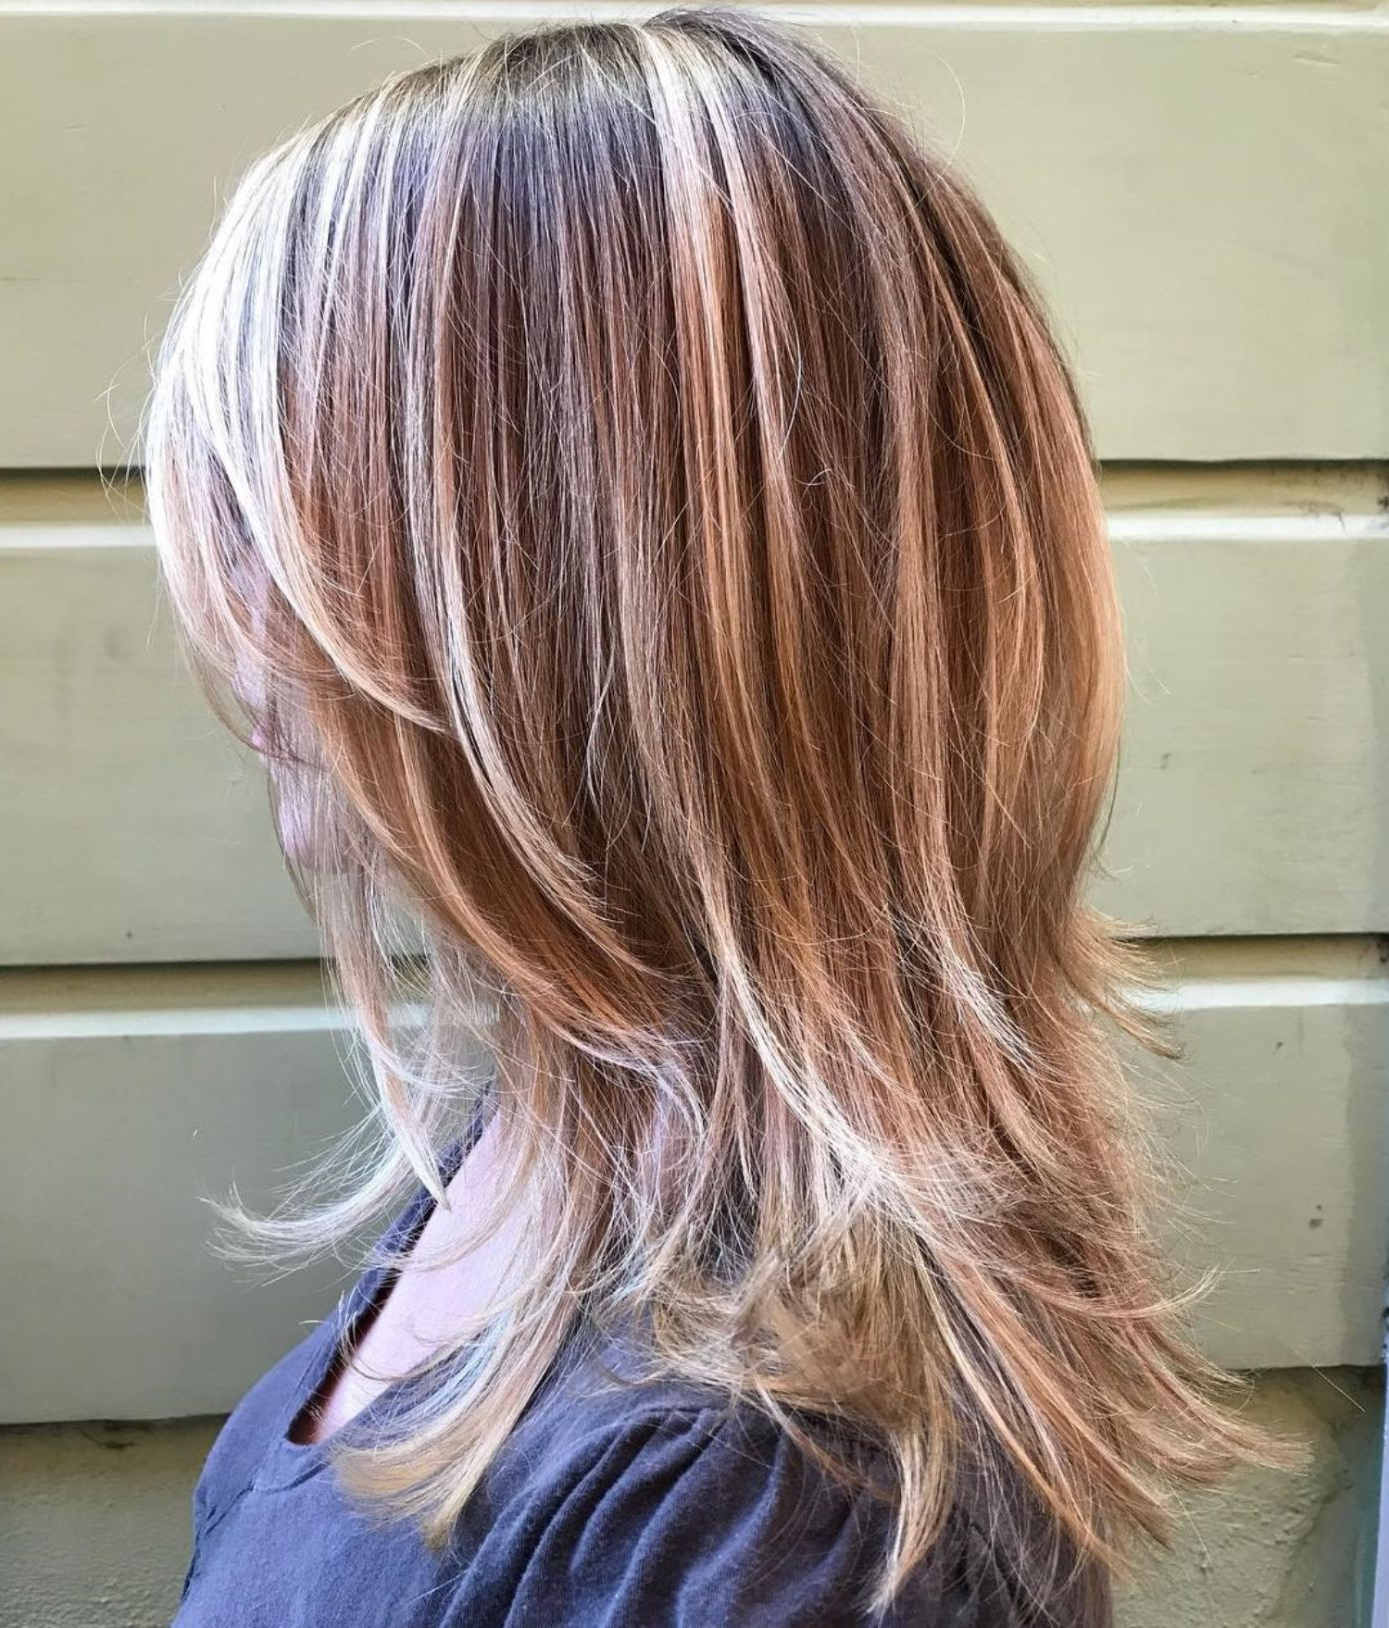 Pin On Current Throughout Popular Medium Razored Shag Haircuts For Straight Hair (Gallery 12 of 20)